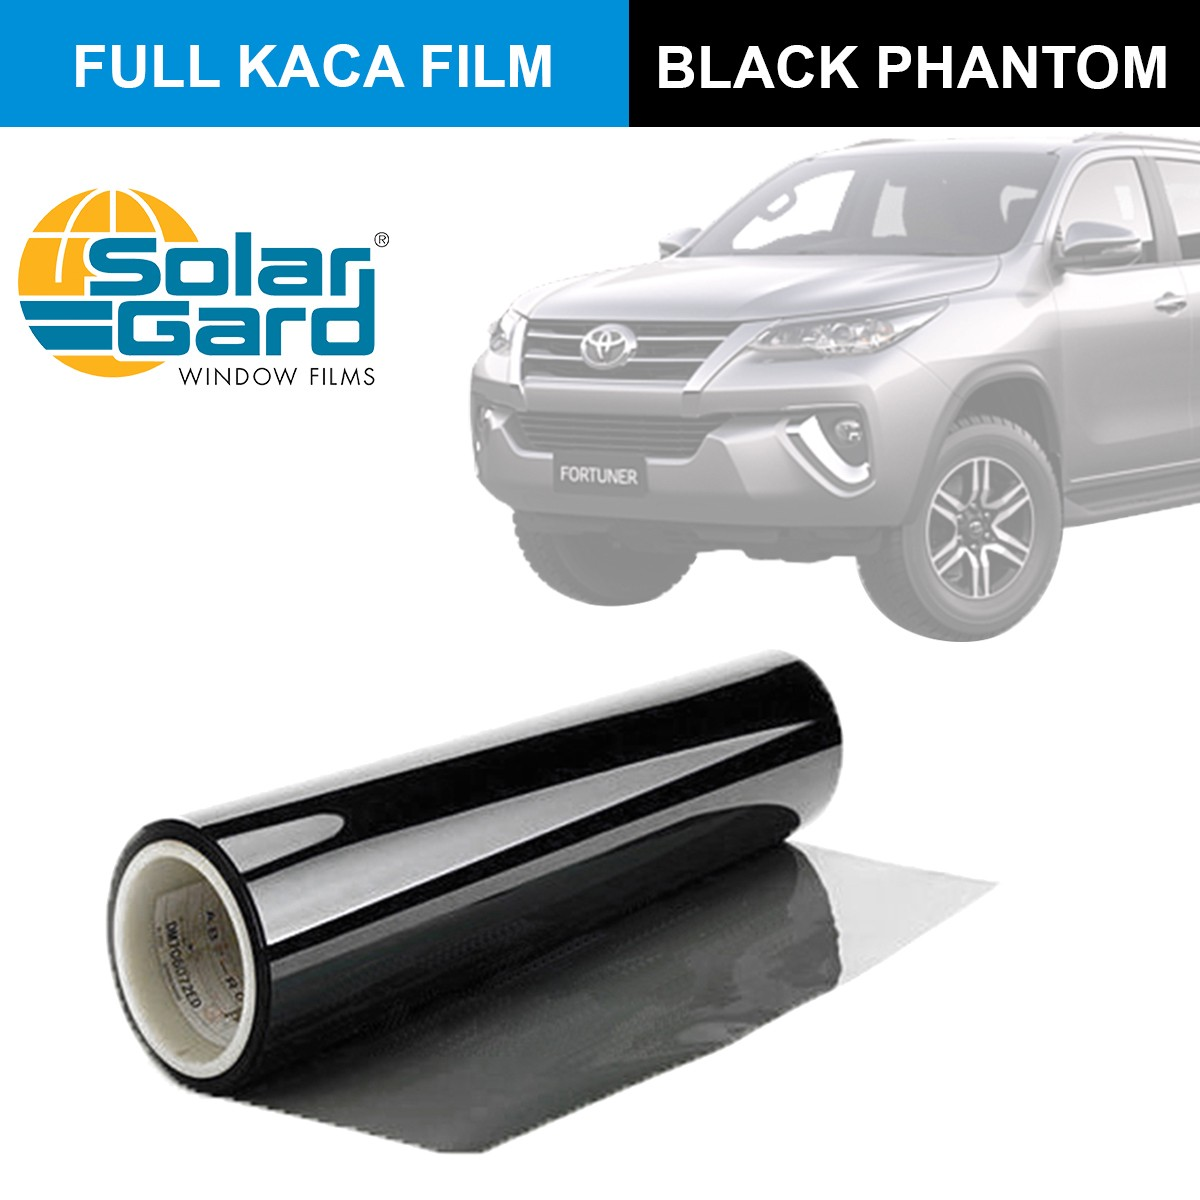 KACA FILM SOLAR GARD BLACK PHANTOM - (LARGE CAR) FULL KACA